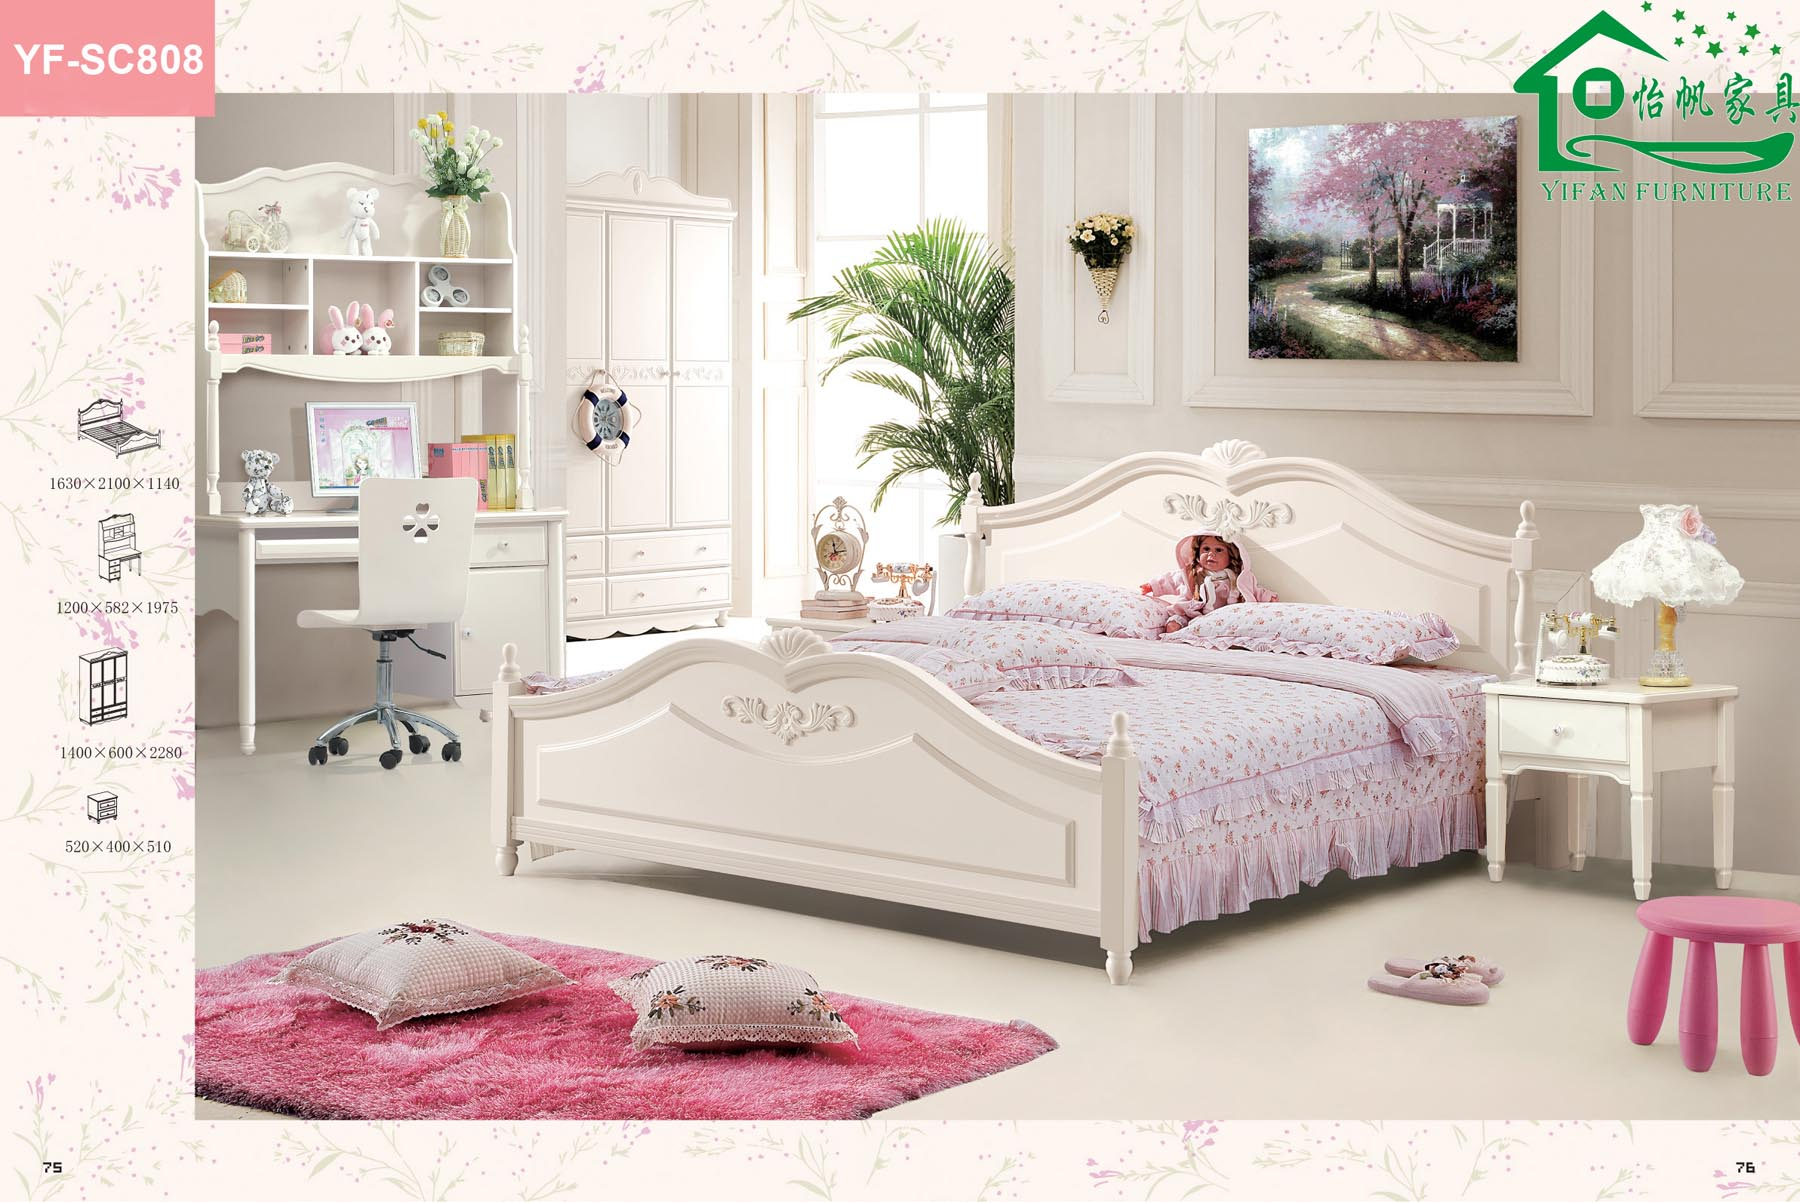 Childrens Bedroom Sets Sale Cheaper Than Retail Price Buy Clothing Accessories And Lifestyle Products For Women Men